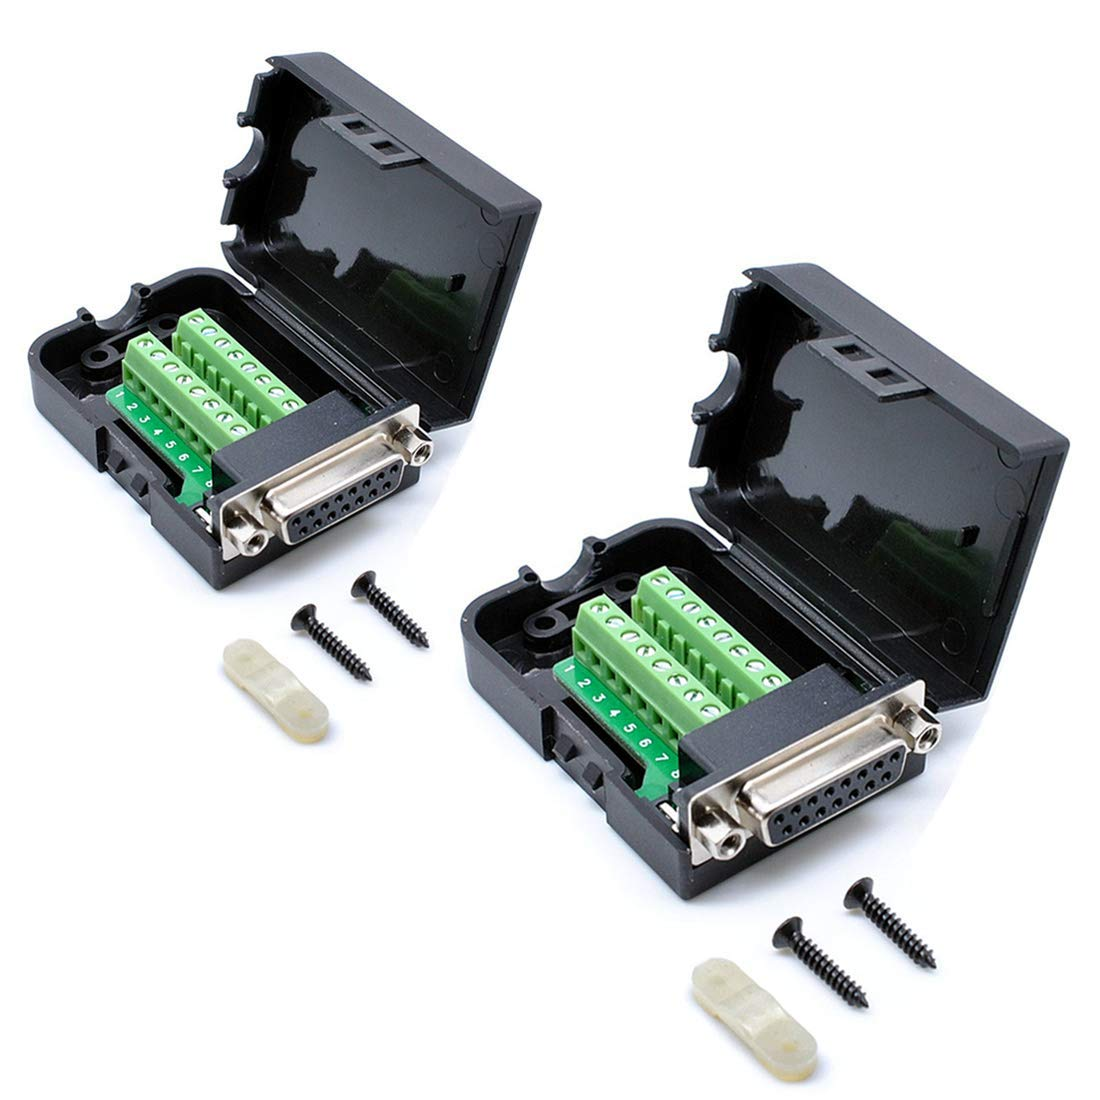 Oiyagai 2pcs DB15 Female 15Pin Connector Adaptor with Nut Terminal Breakout Board Free Welding